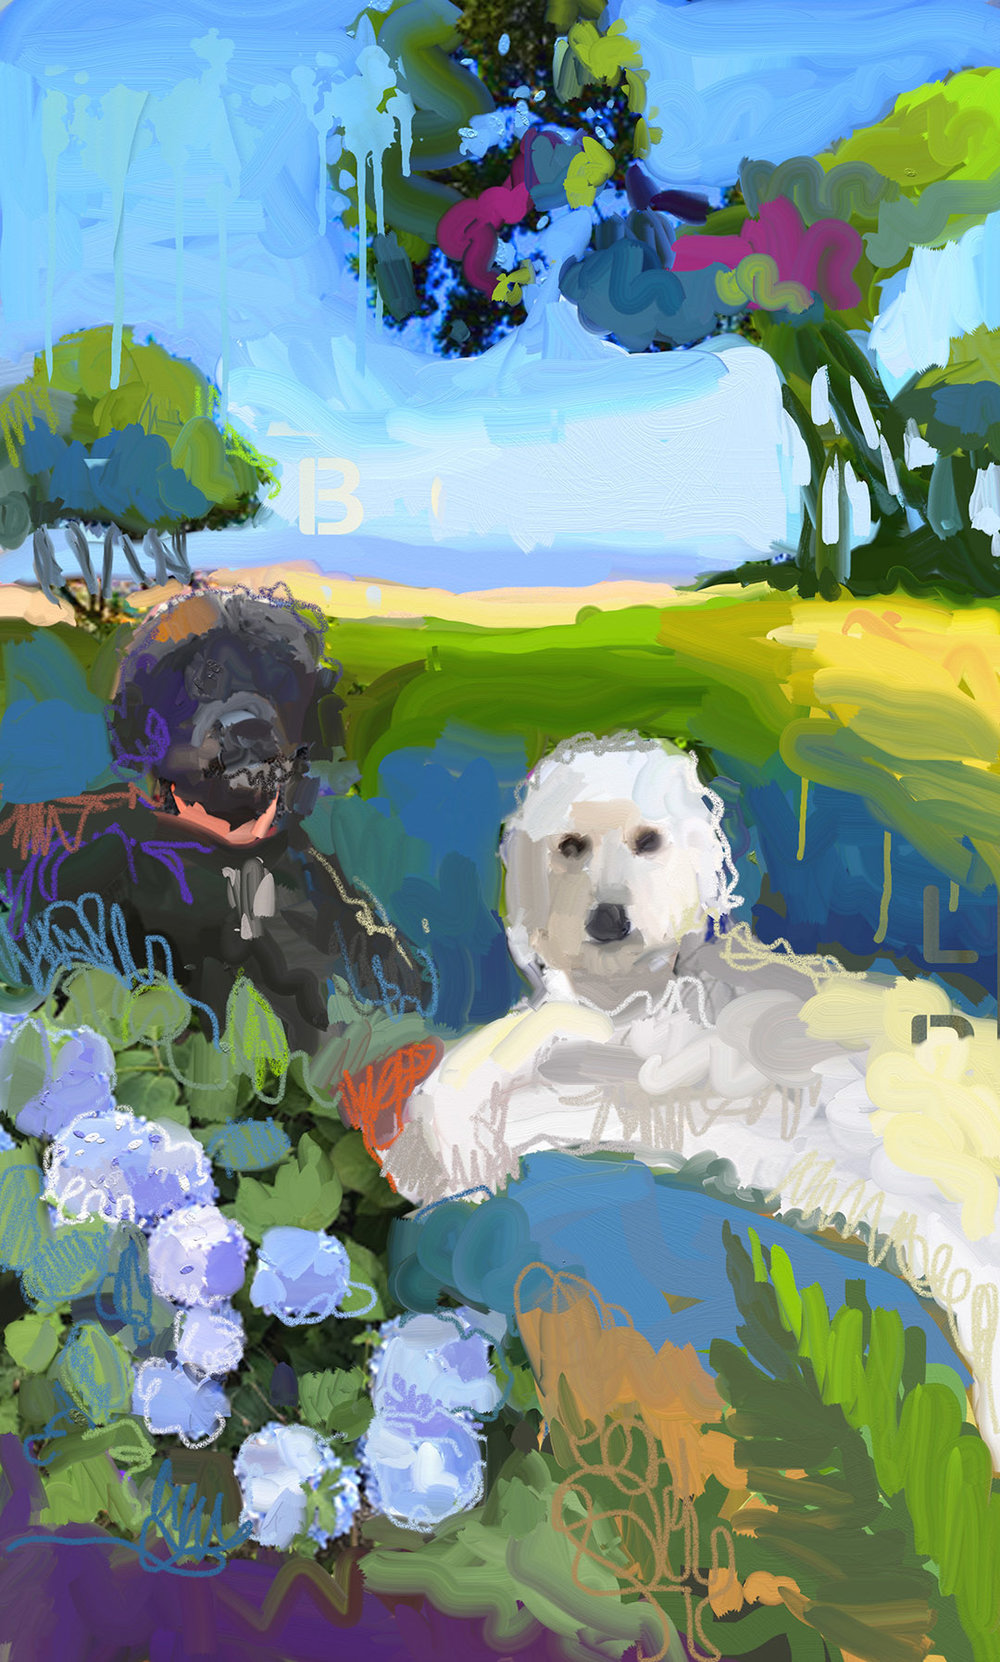 Our girls! We had Lola and Blossom's portrait painted by   the wonderful California artist Andrew Faulkner.